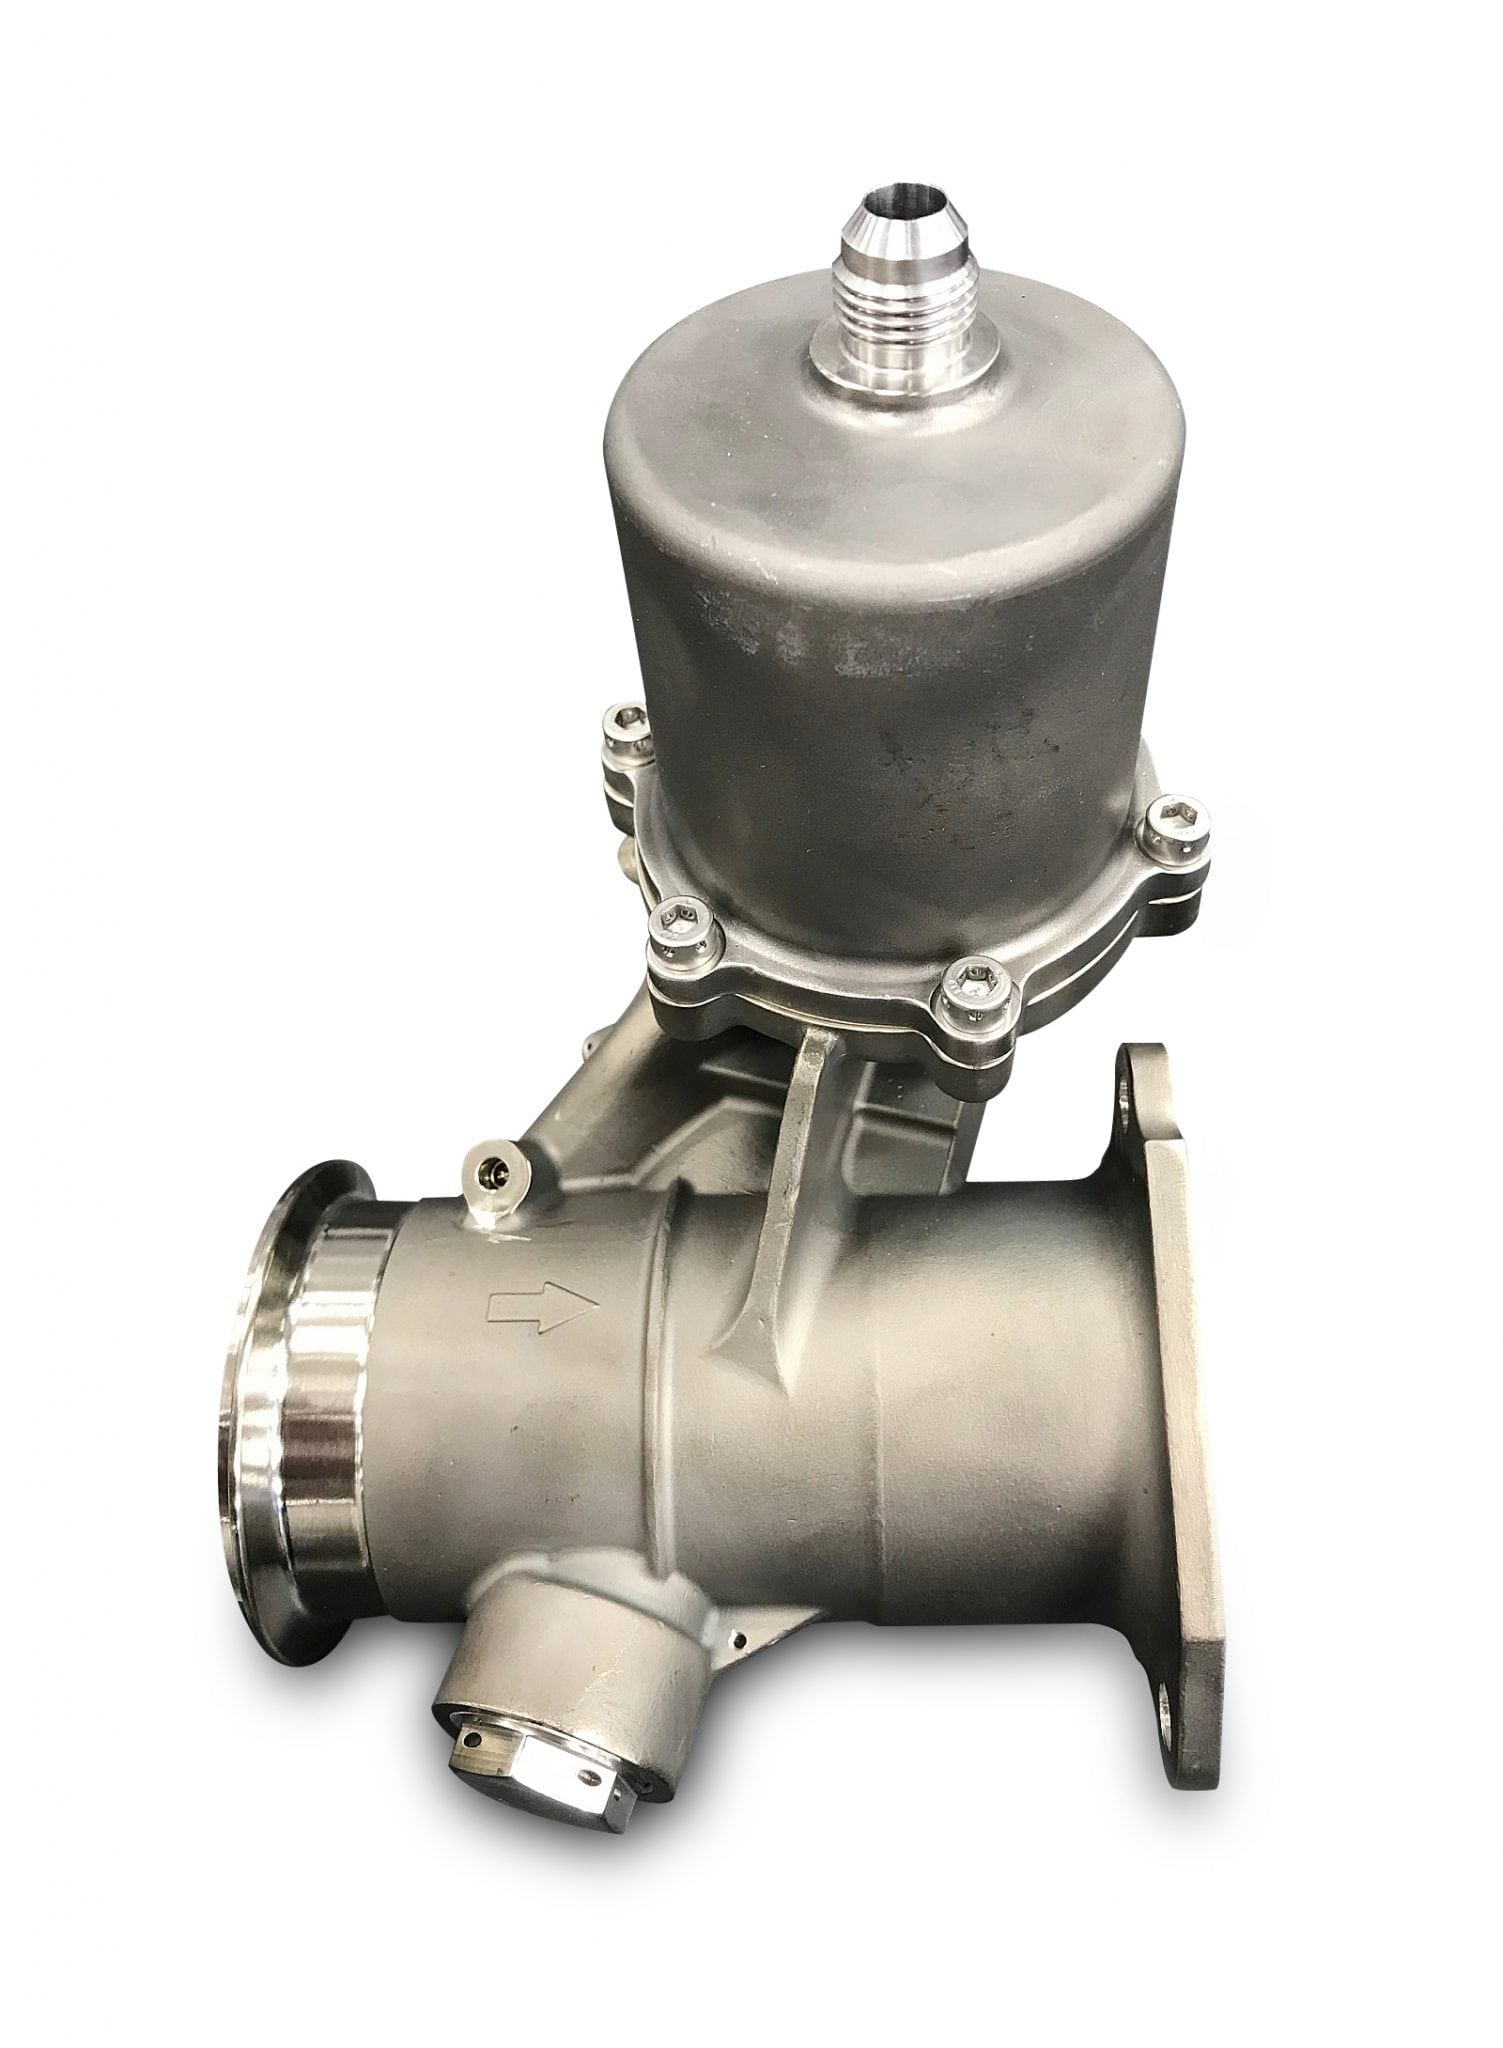 Whittaker Controls pressure reducing valves by Meggitt